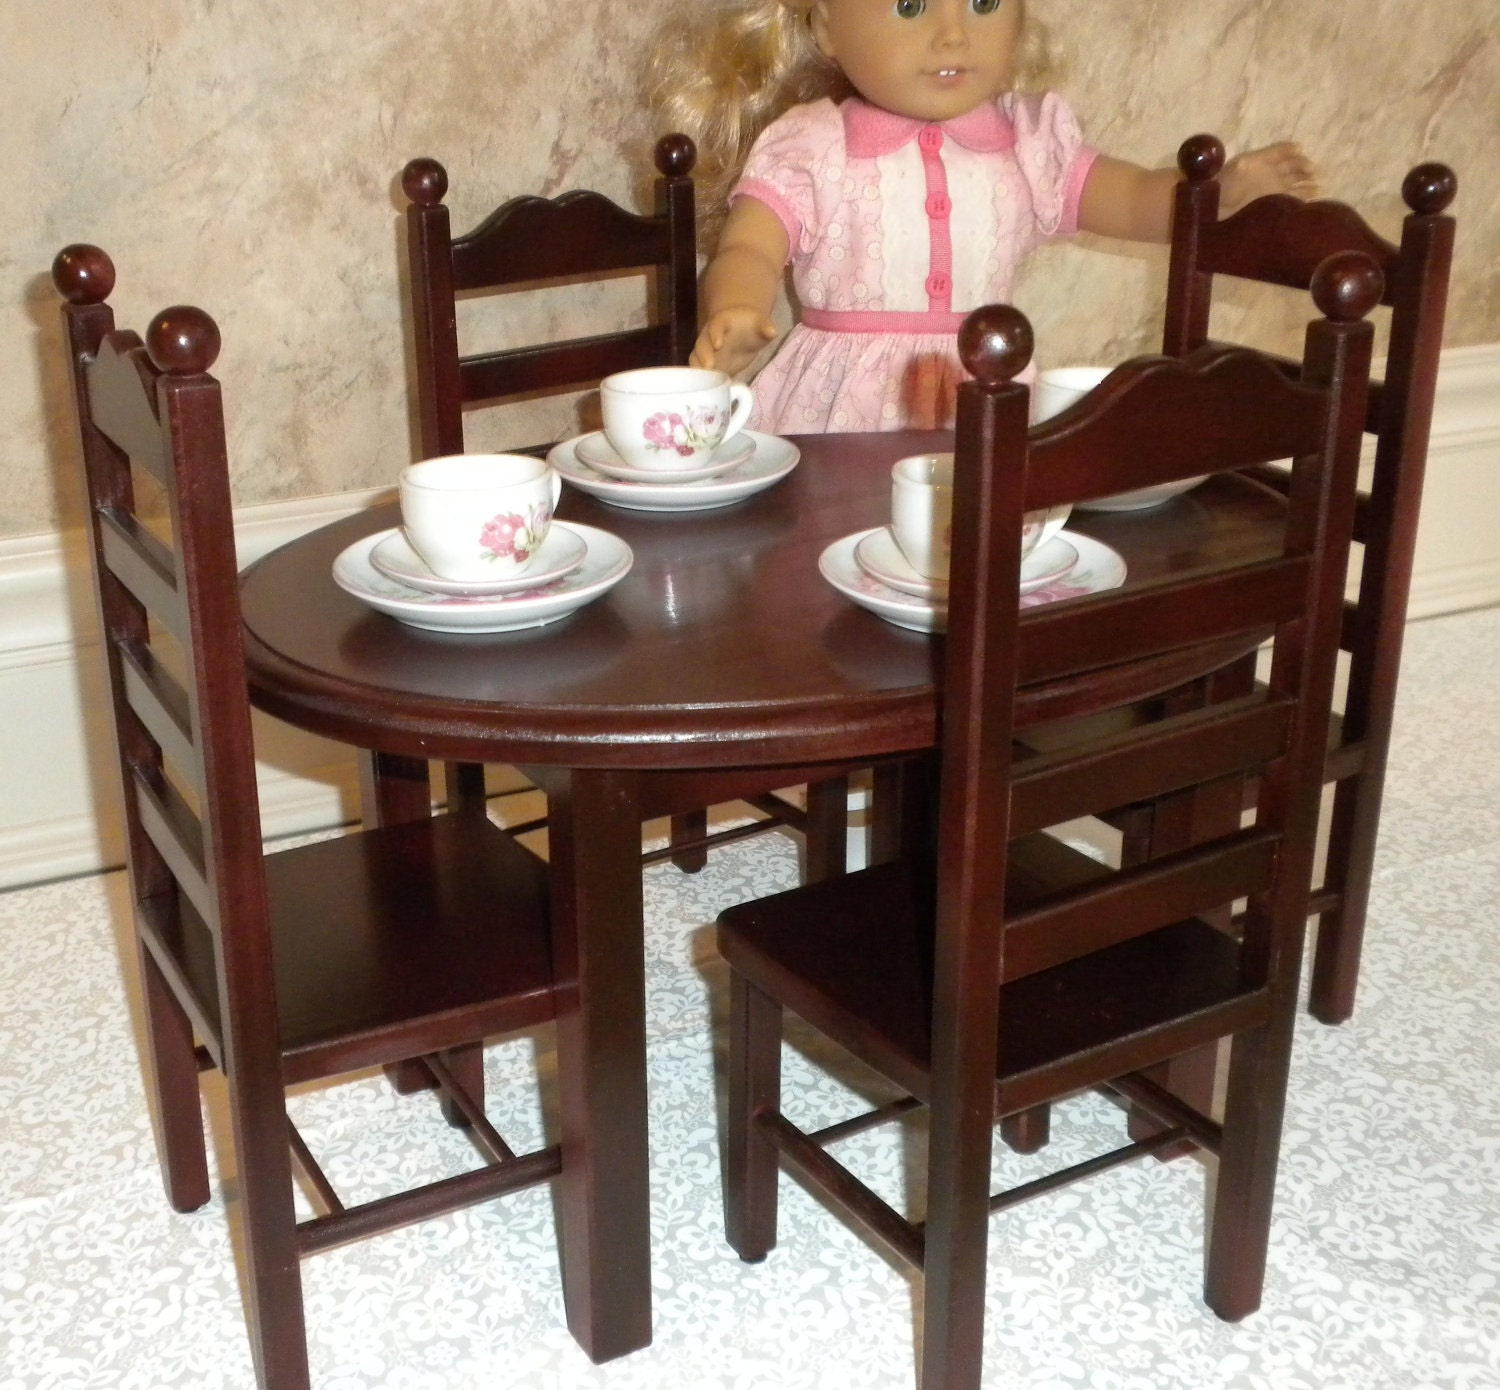 historical oval table and 4 chair set american girl doll or. Black Bedroom Furniture Sets. Home Design Ideas